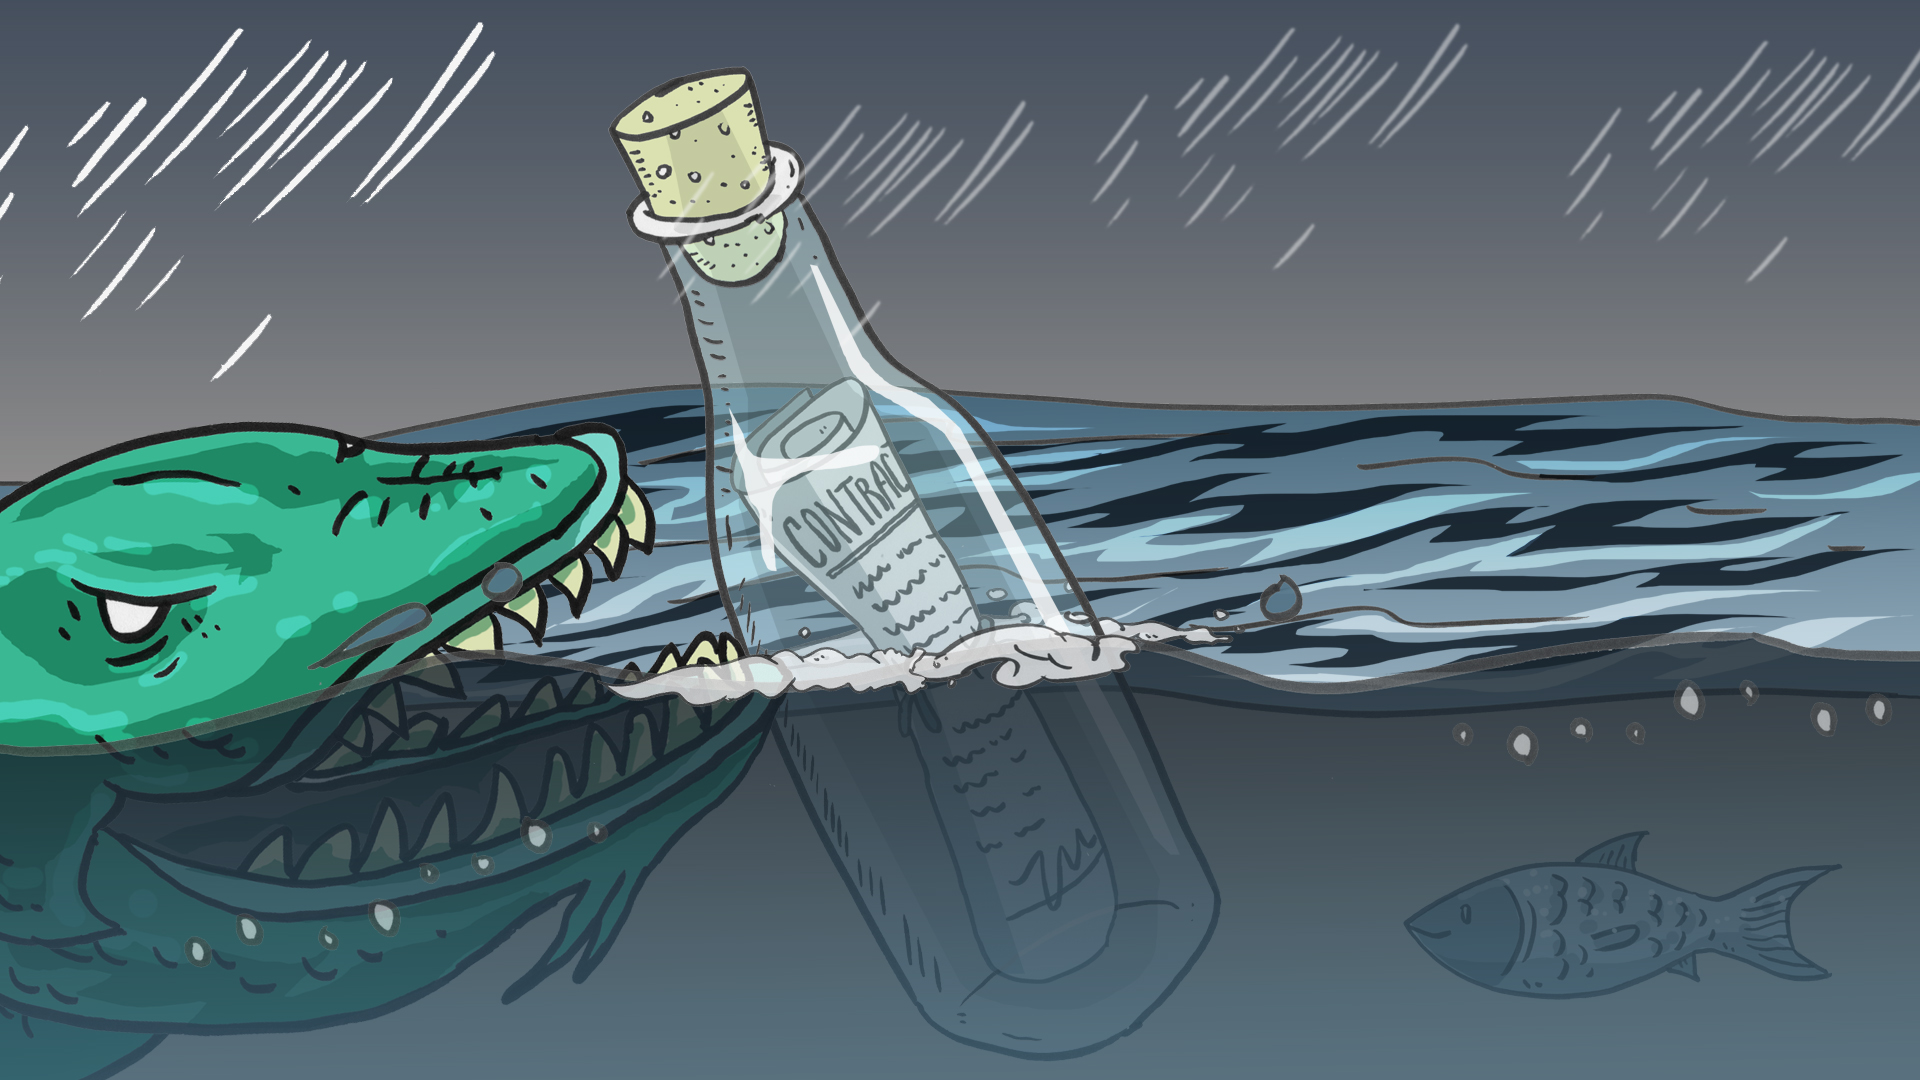 Scene4_SeaMonster_BottleMessage2_1920x1080.jpg